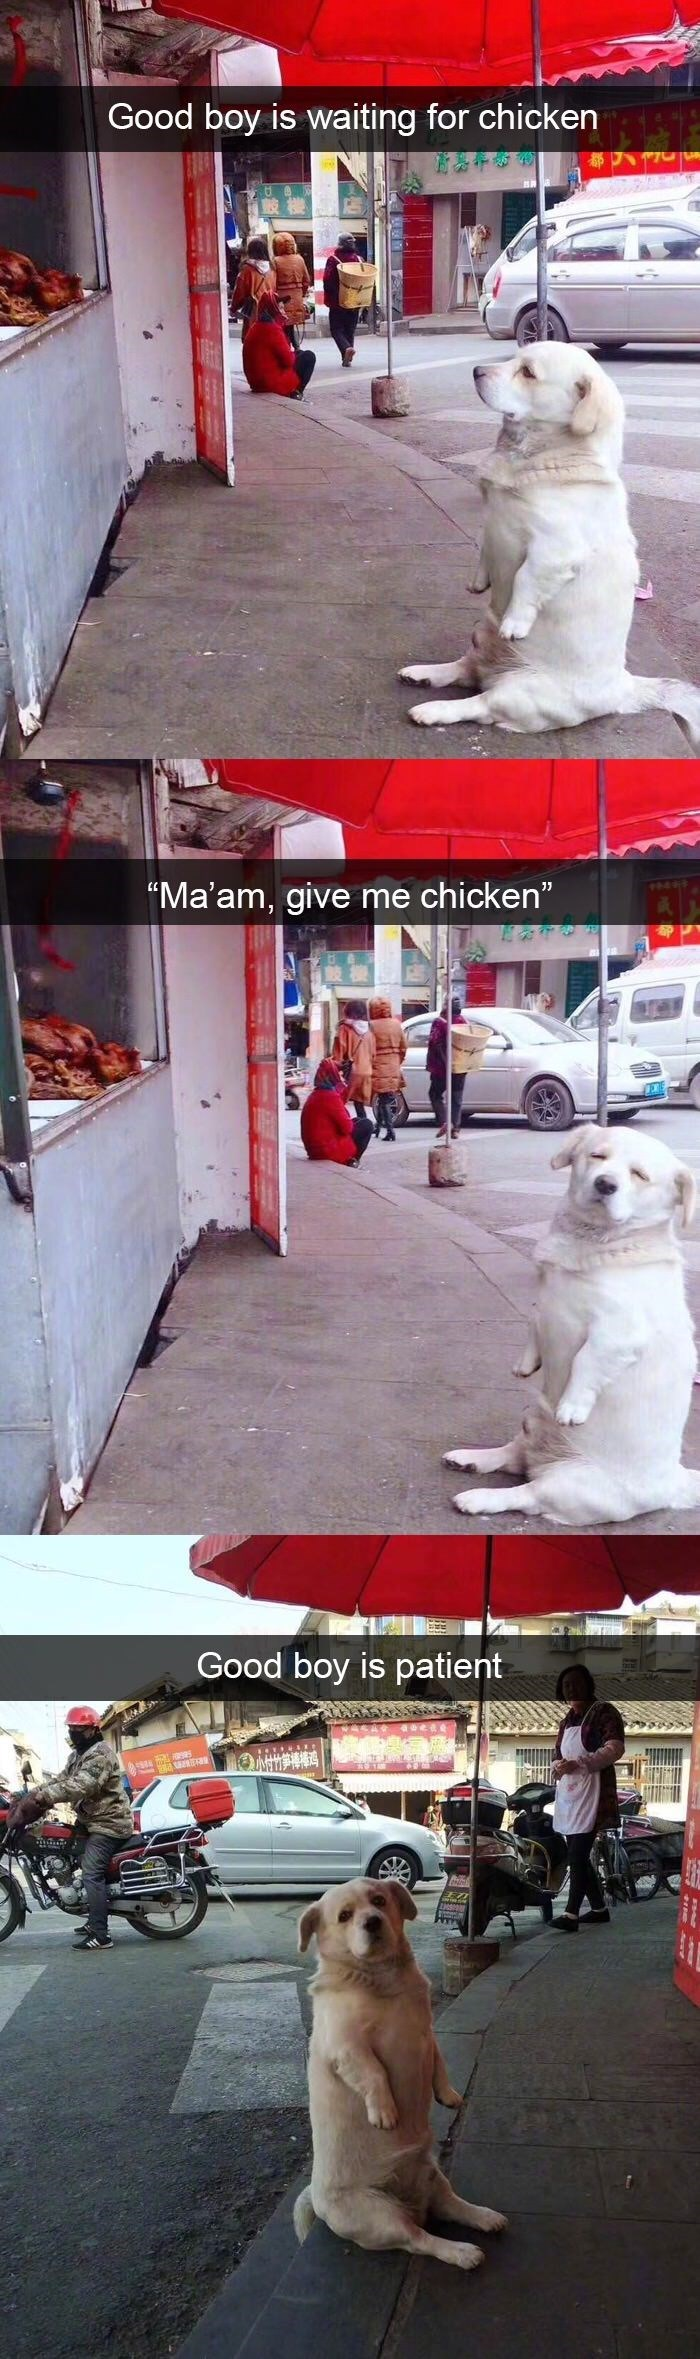 funny dog meme of a dog sitting on his legs while waiting for food